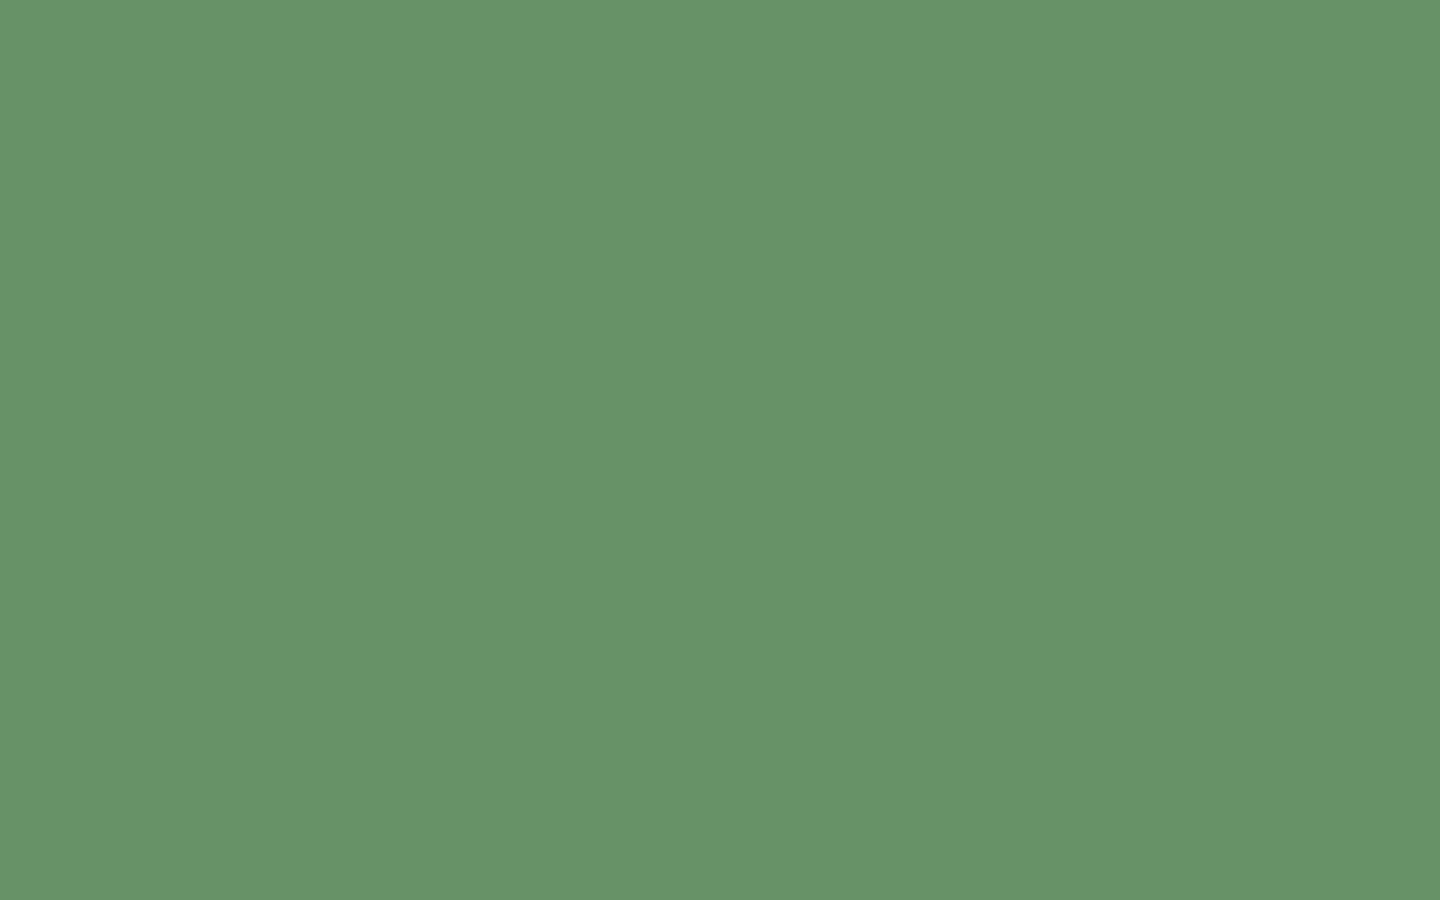 1440x900 Russian Green Solid Color Background